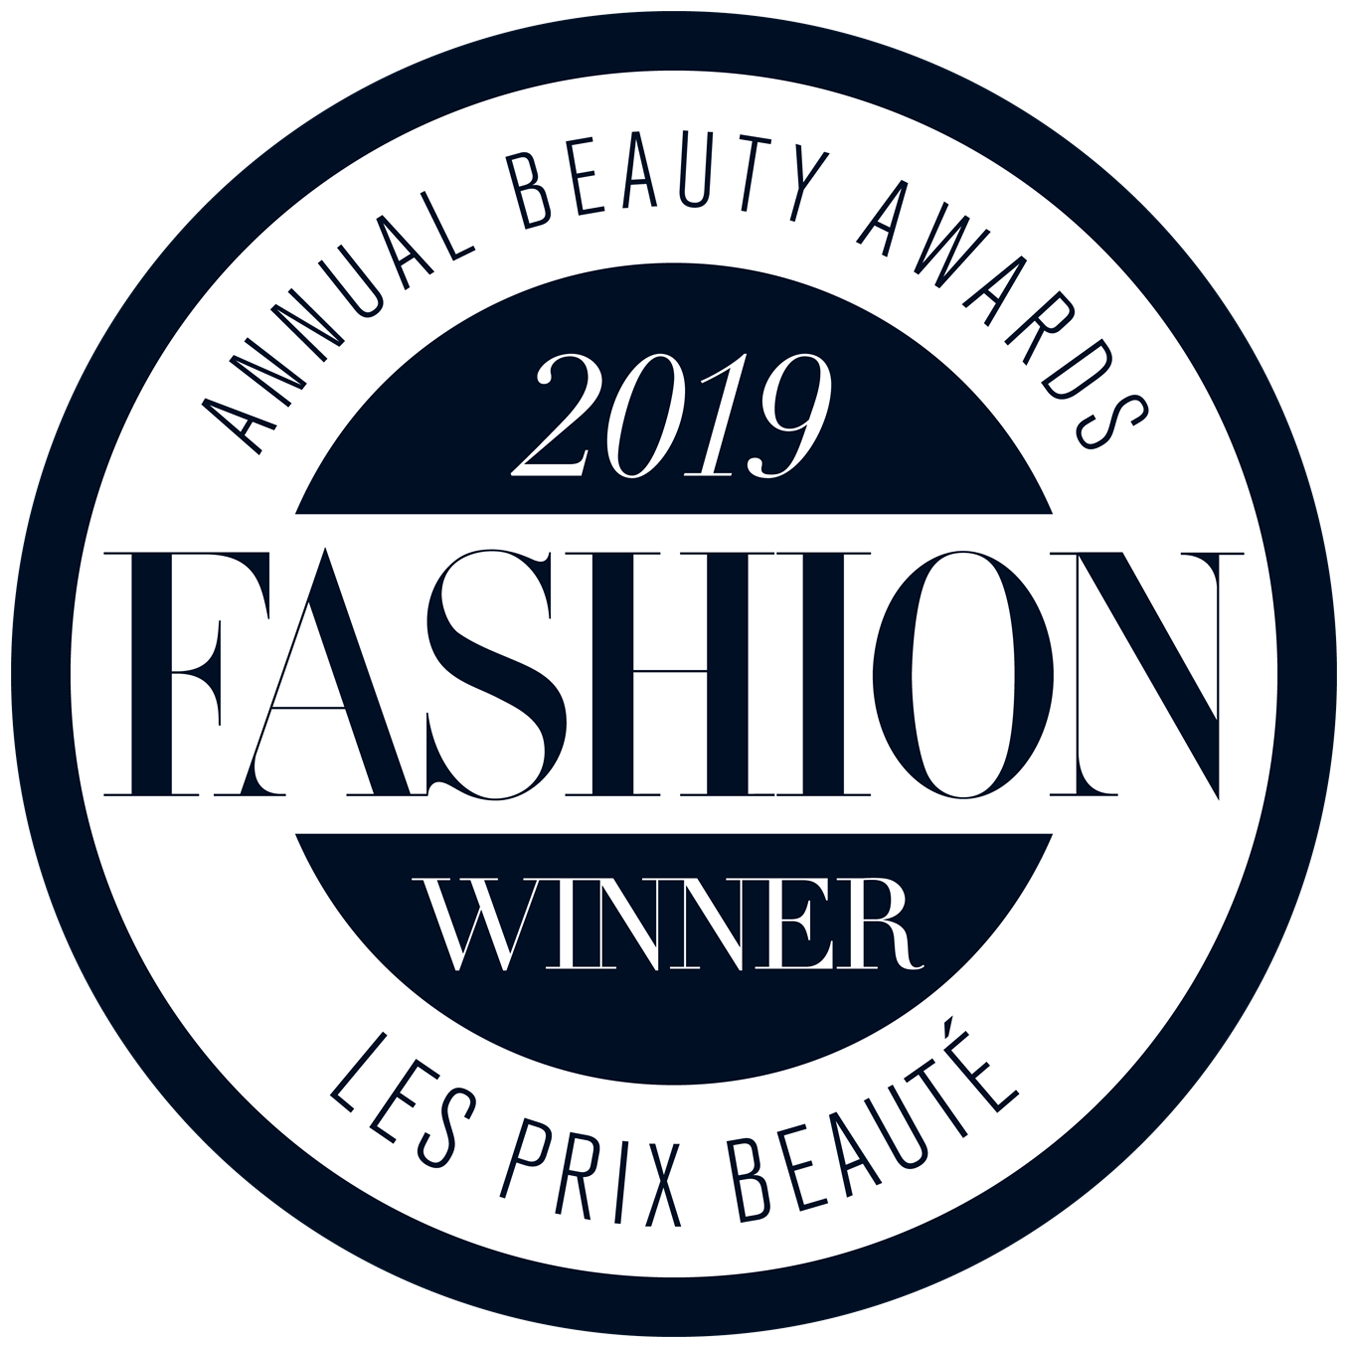 FASHION Beauty Award 2019